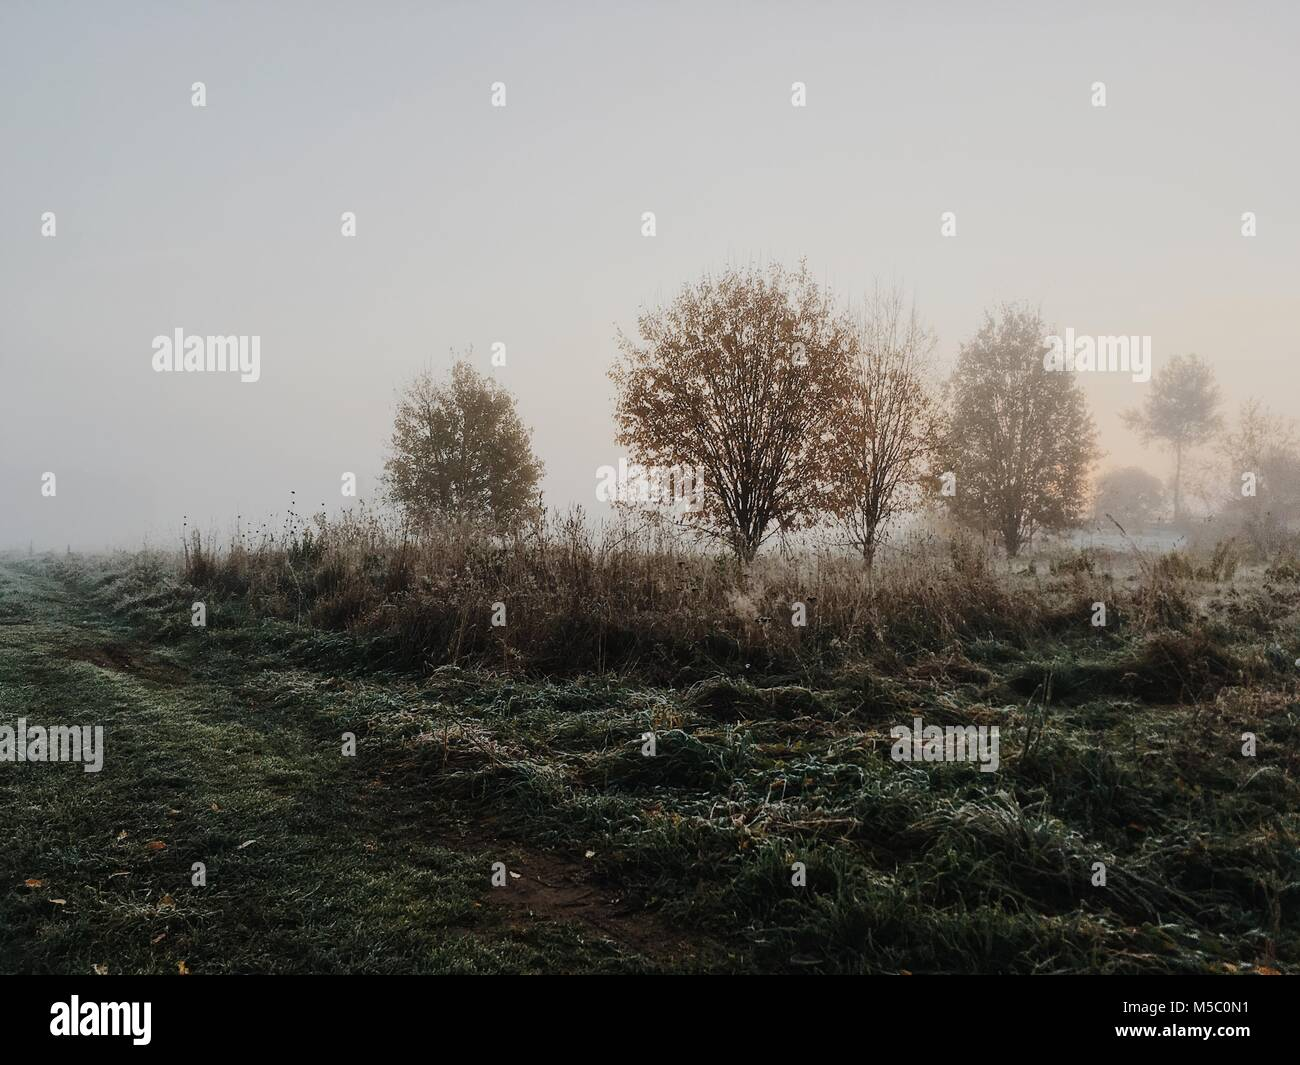 Golden-foggy morning in the manor park. - Stock Image